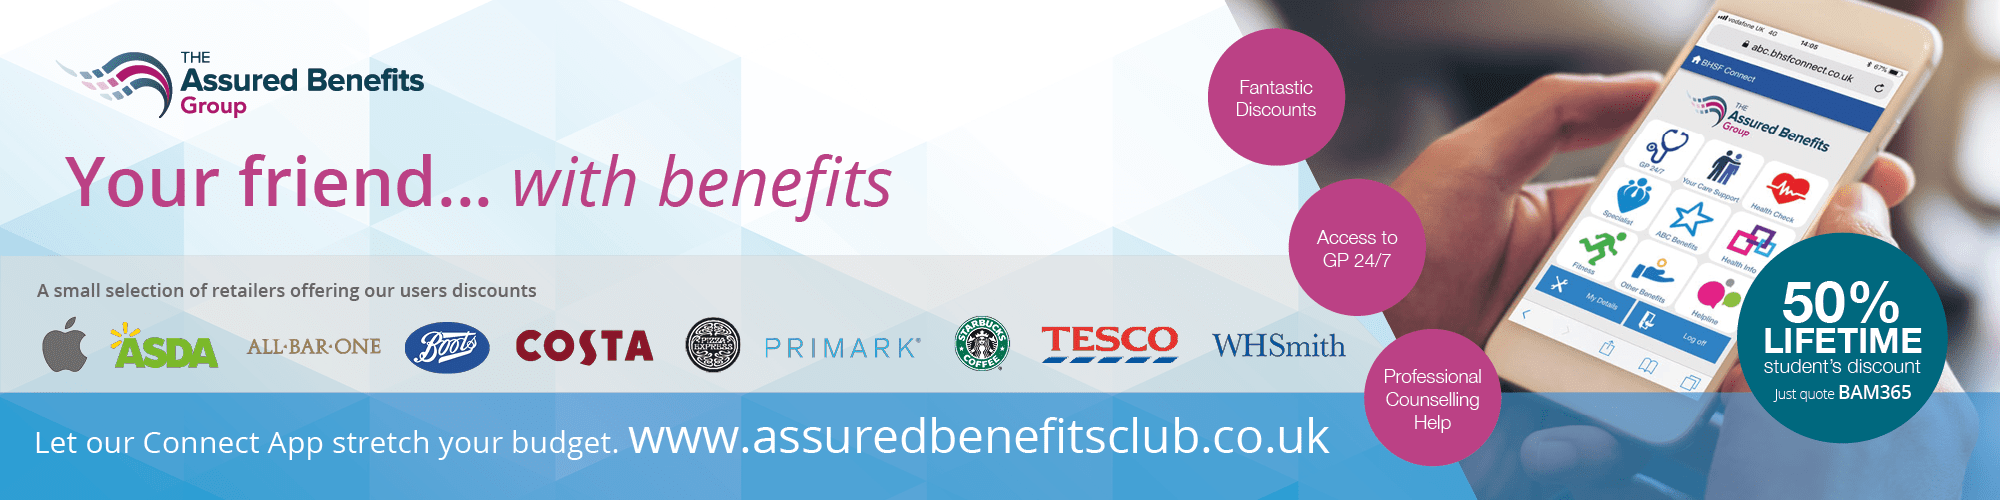 Assured Benefits